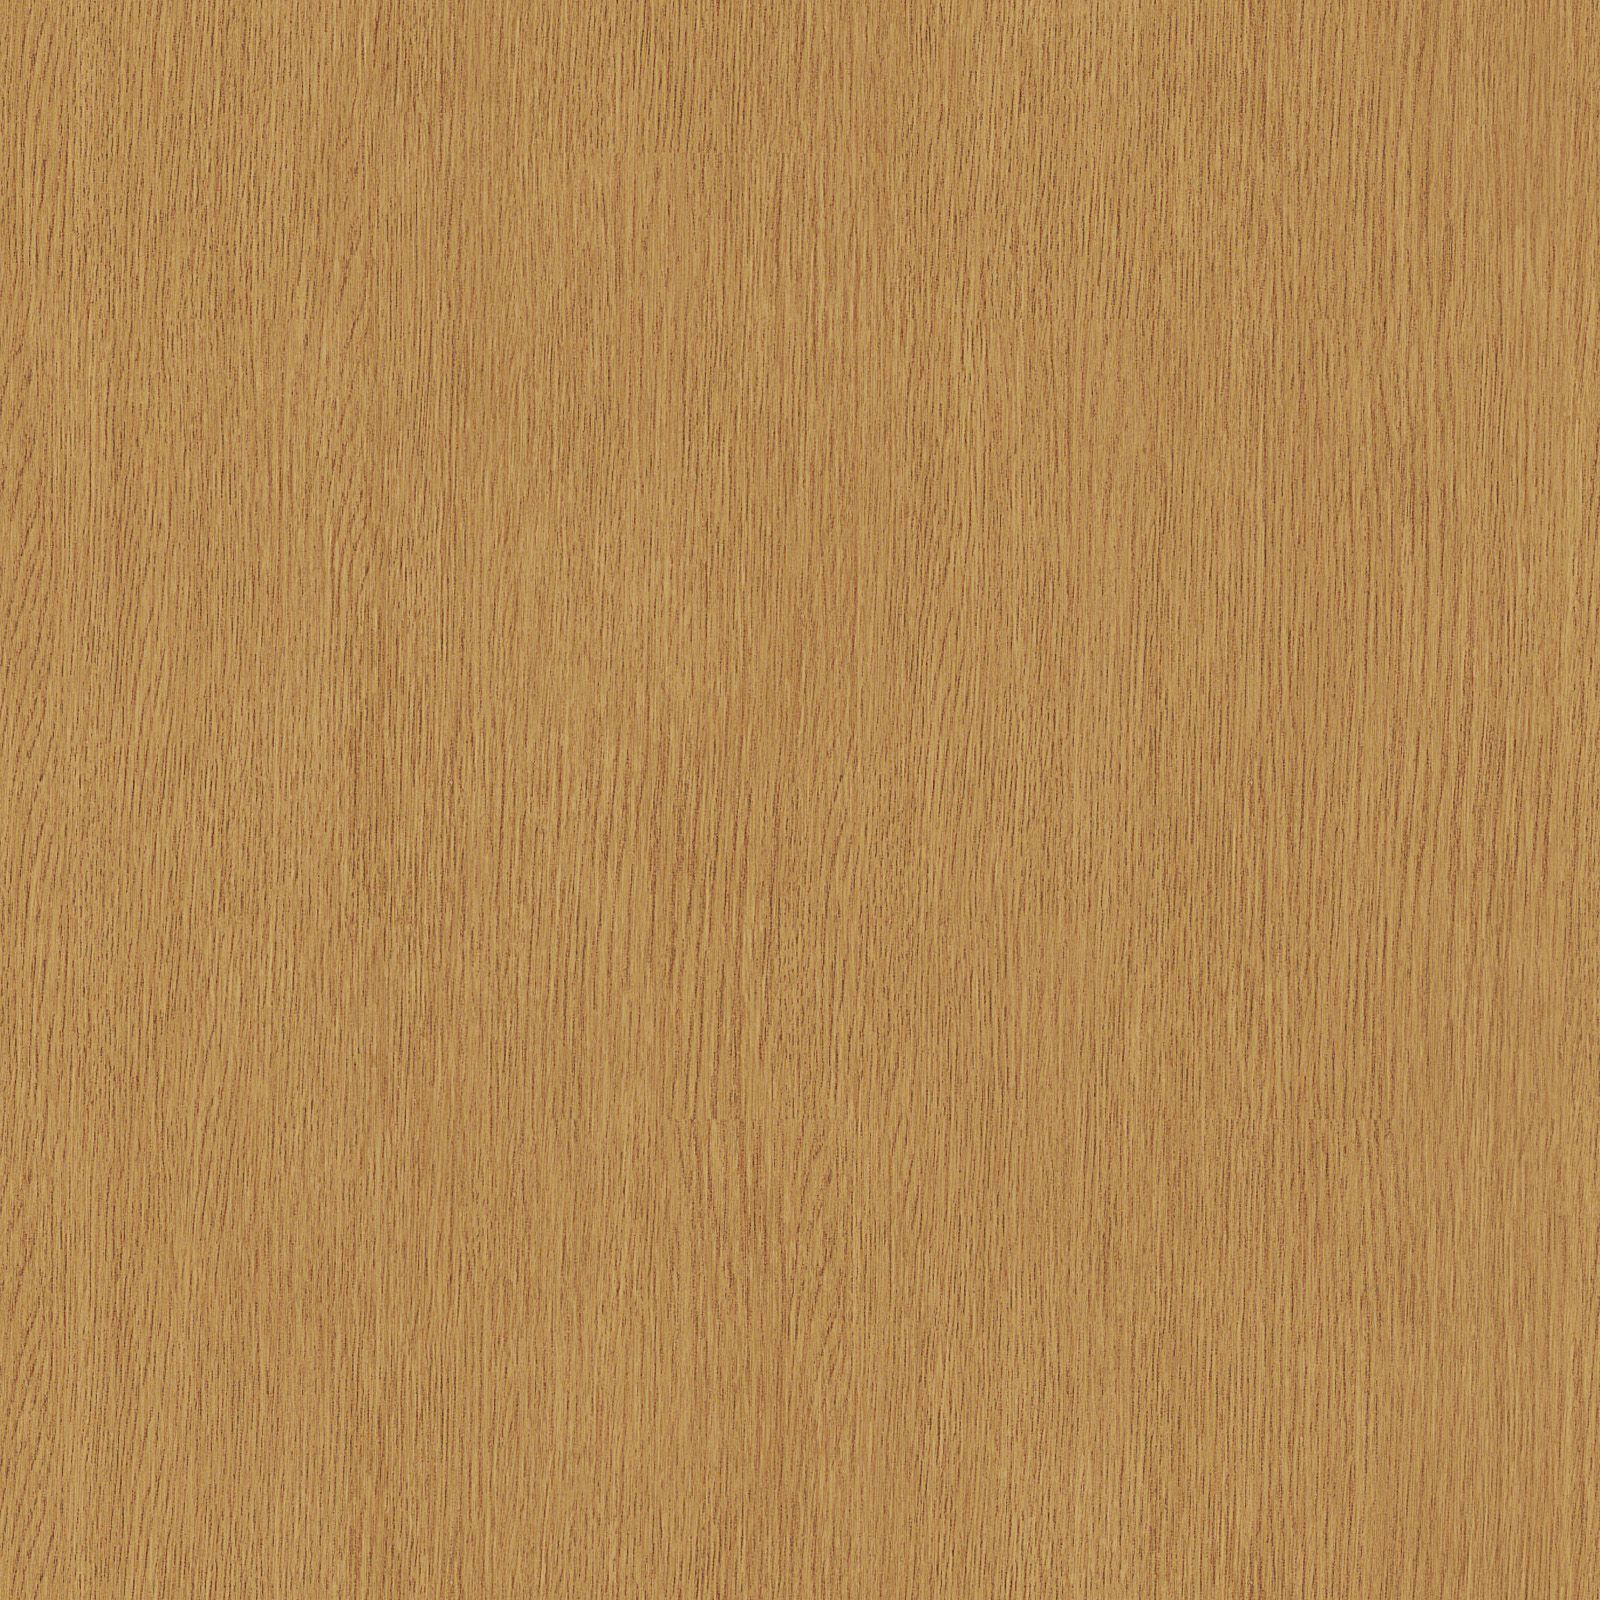 Wood Furniture Texture Hd Background 9 Wallpapers